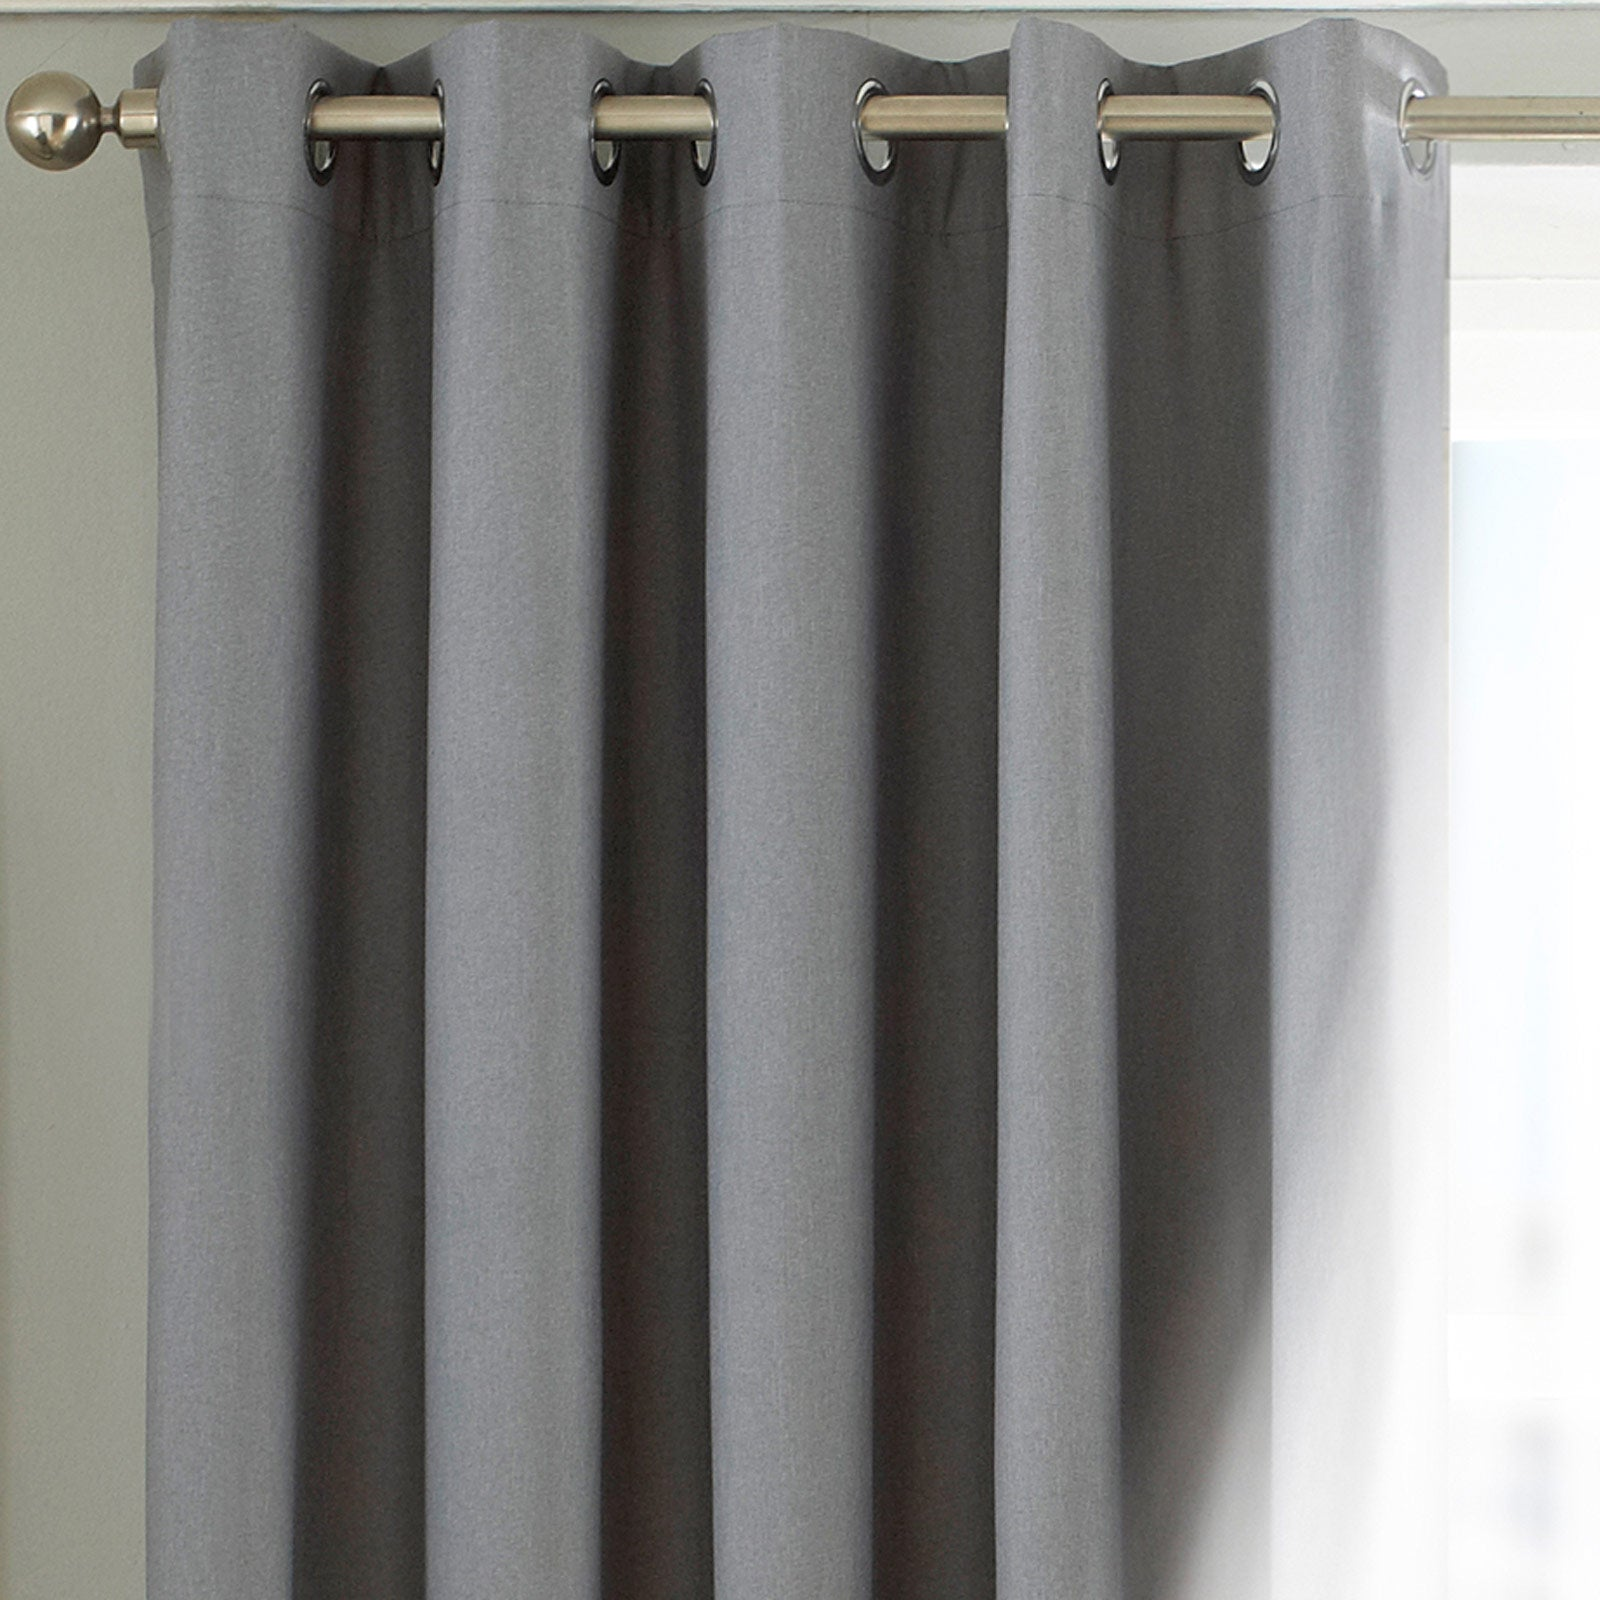 Twilight Thermal Blackout Eyelet Curtains Silver -  - Ideal Textiles